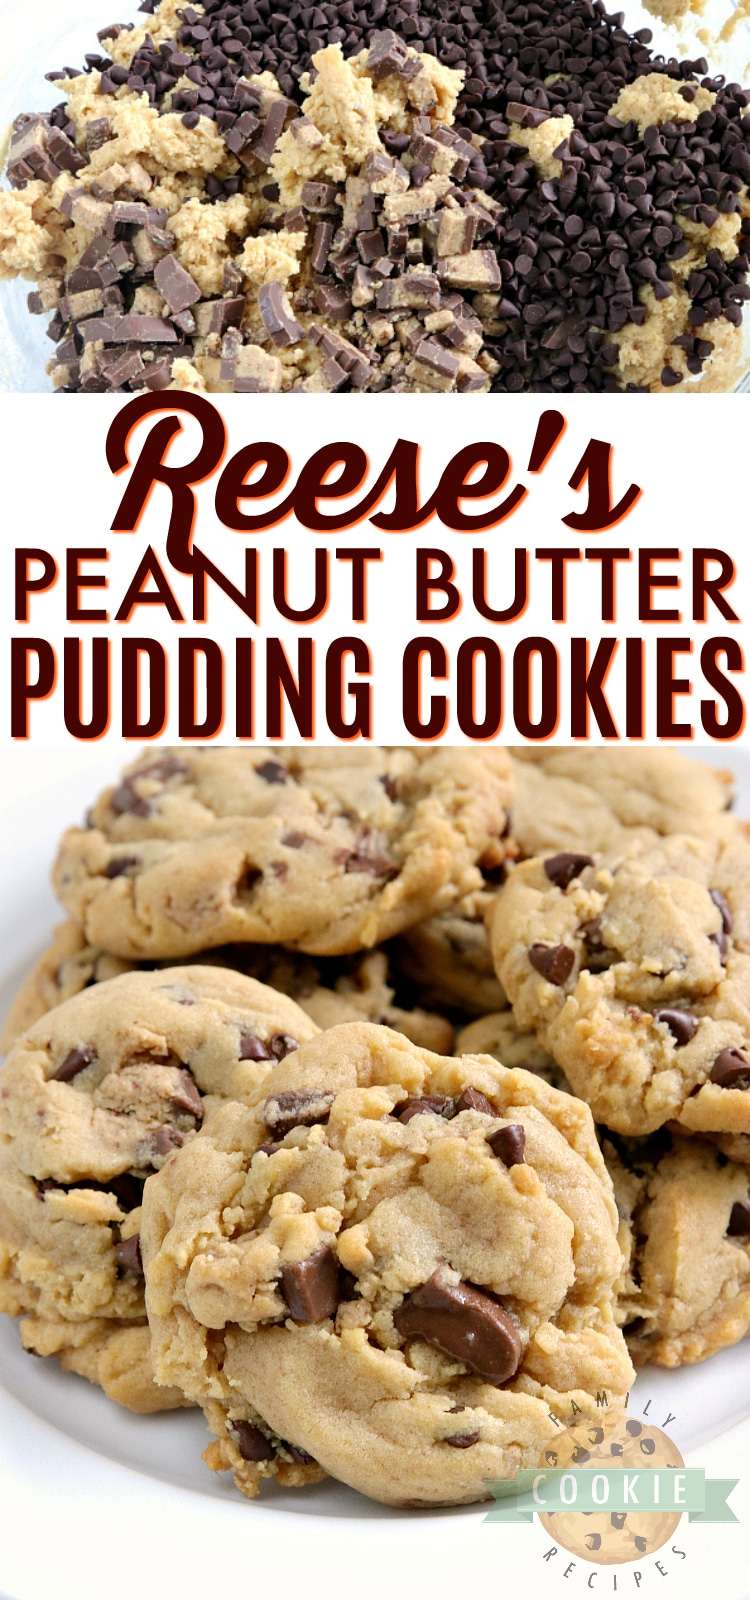 Reese's Peanut Butter Pudding Cookies are soft and chewy peanut butter cookies made with vanilla pudding mix and chopped up Reese's peanut butter cups too! via @buttergirls